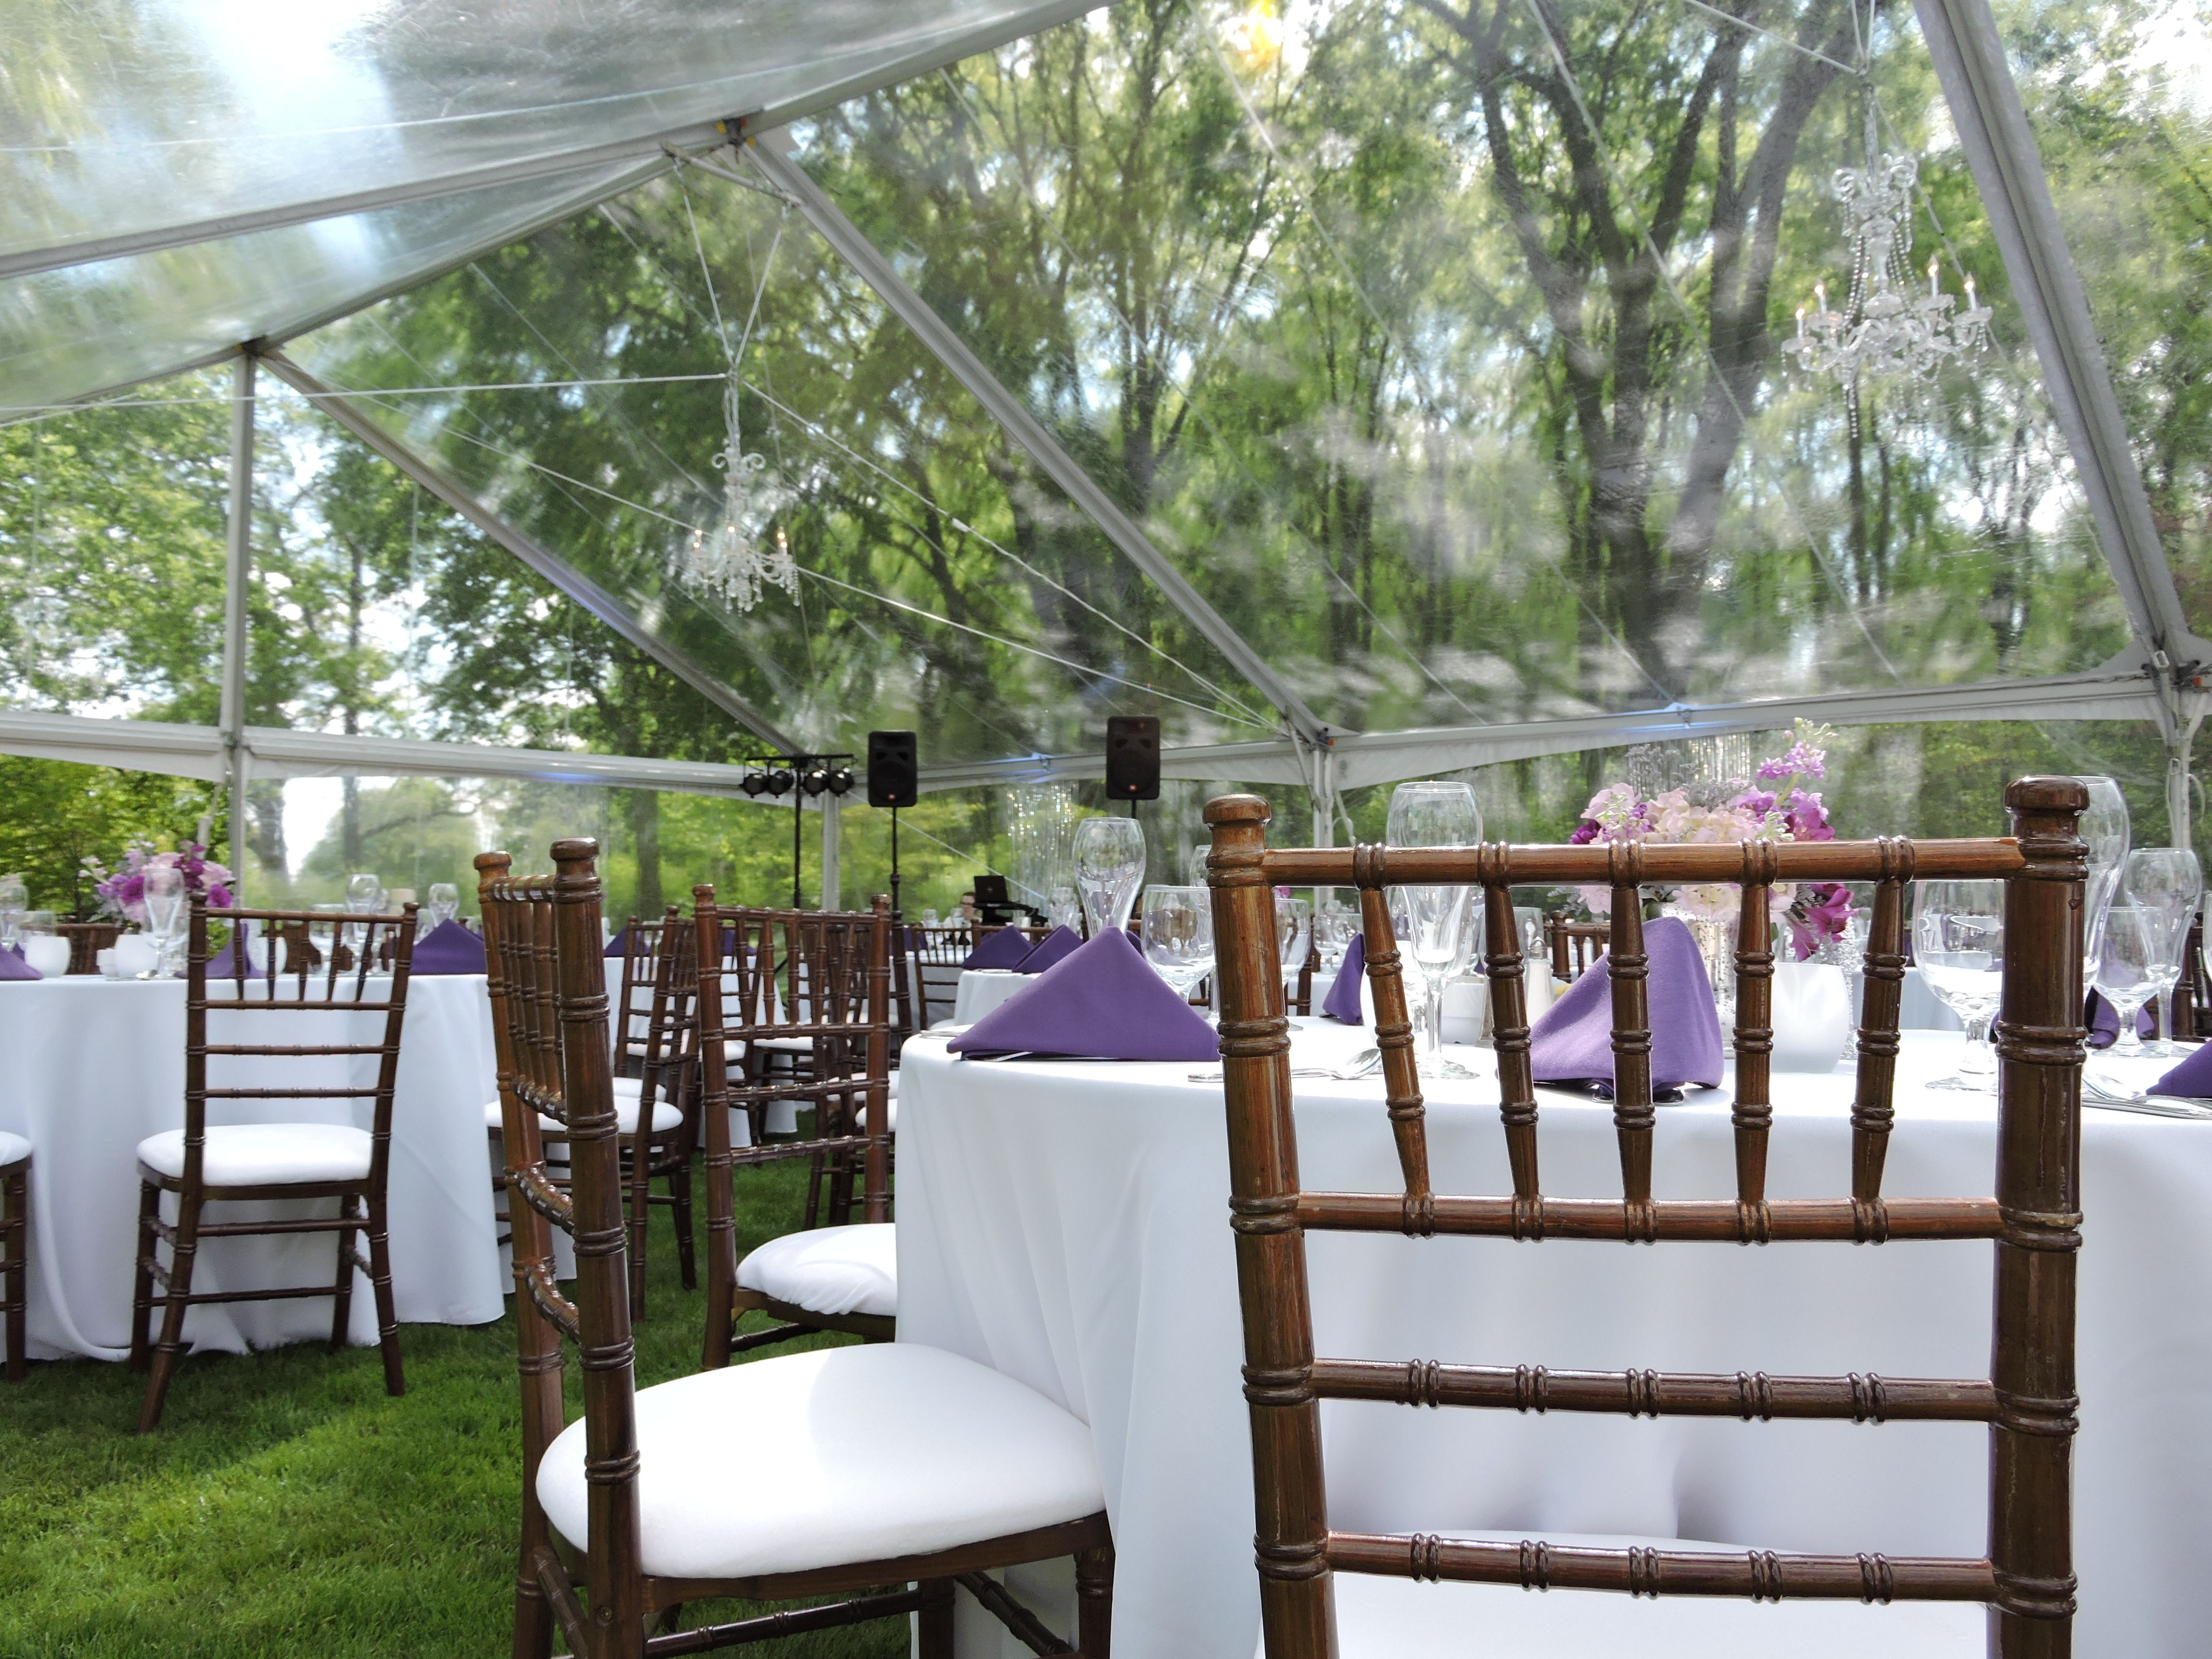 Beautiful outdoor wedding with clearspan tents mahogany